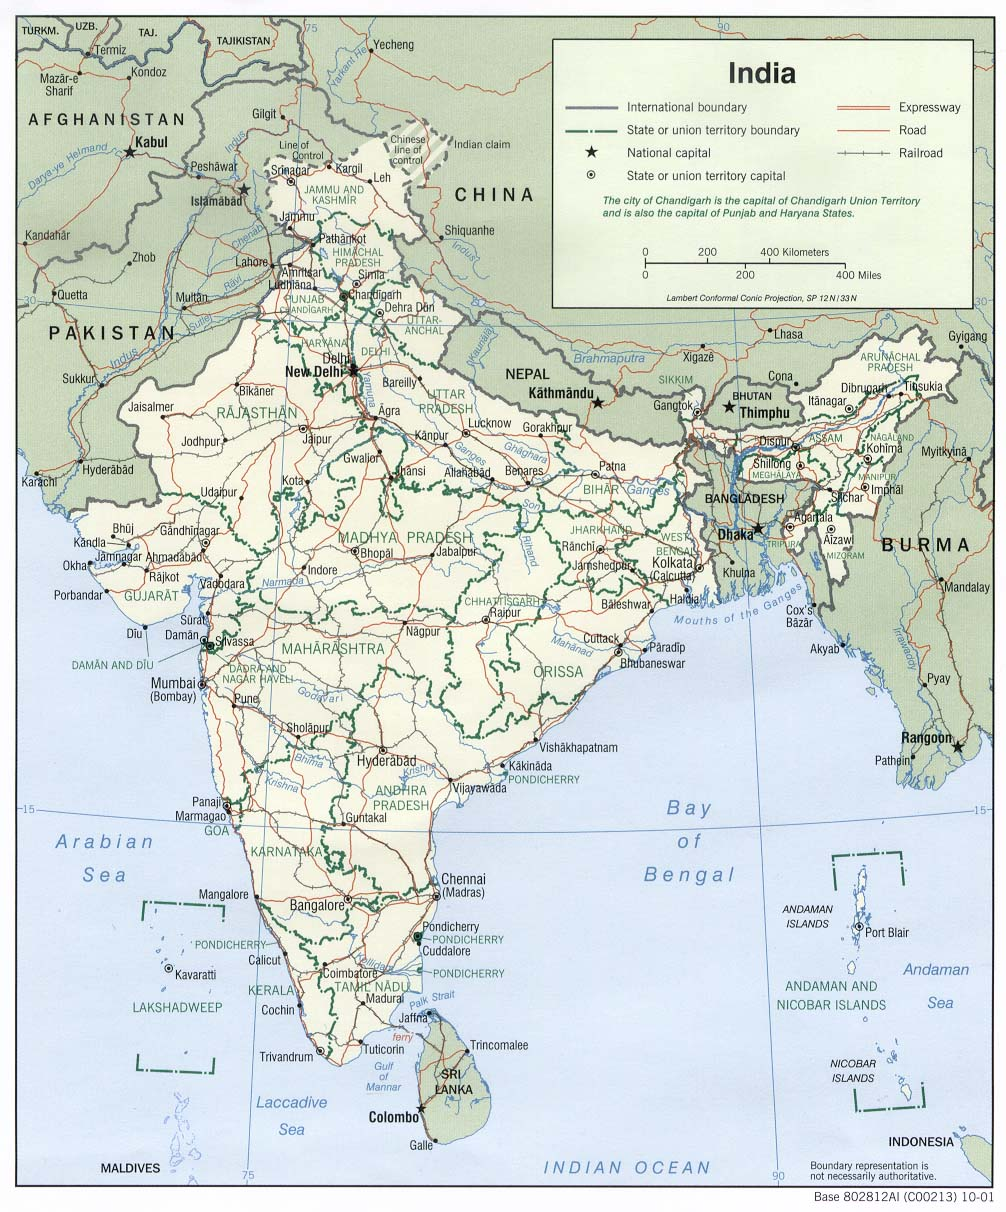 Map of India Indian Map Showing States on the 13 states, map all states, show us map with states, most beautiful states, world map states, middle west states, tour of states, map your show, british states, map western states, usa map with states, most affordable states, map of states, midatlantic states, map with title, northwest ordinance states, map with state names, india map states,